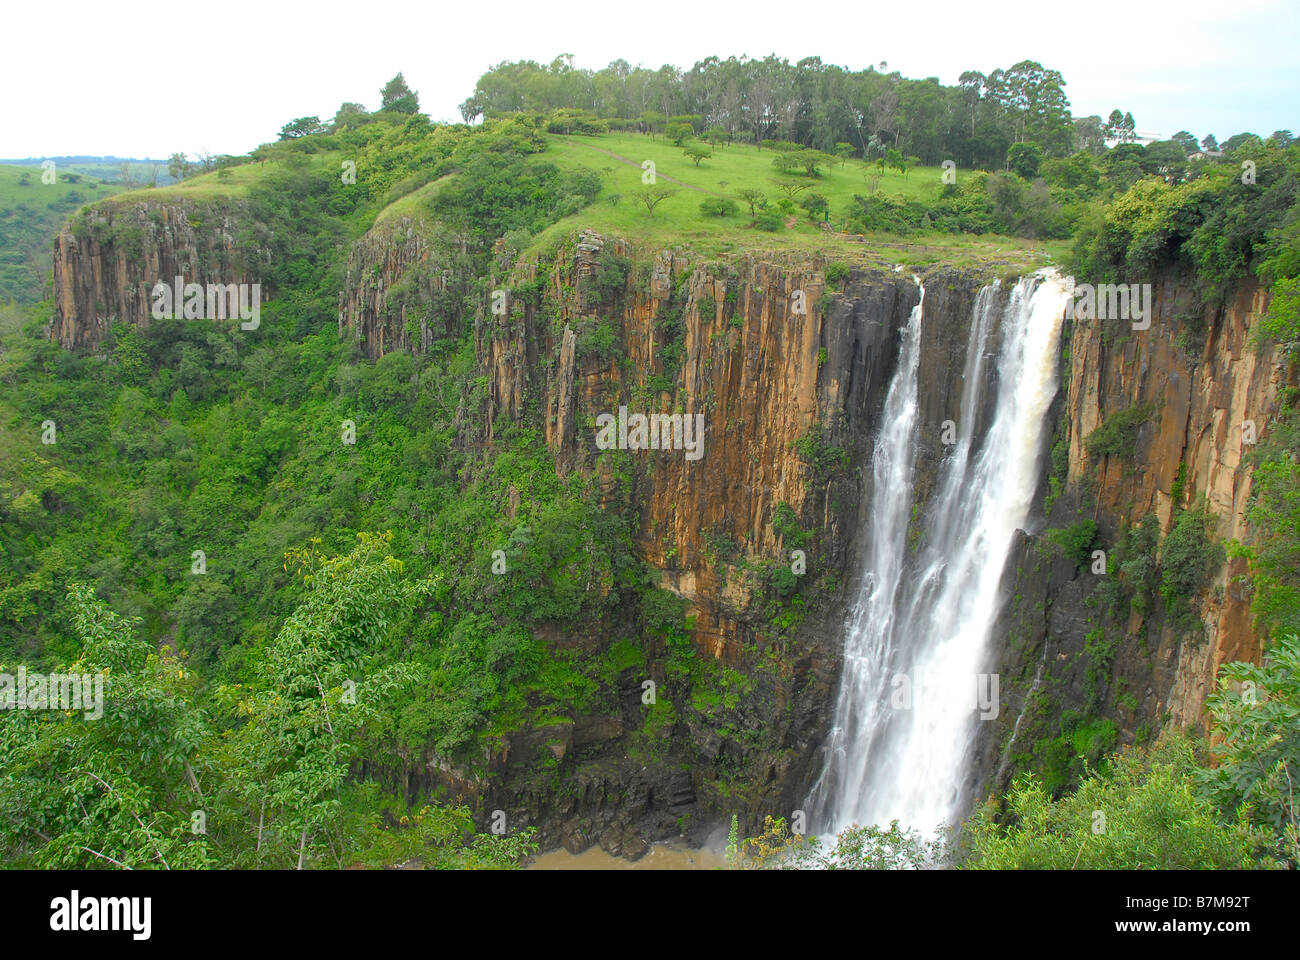 Horizontal shot of Howick Falls in the Natal Midlands, South Africa. Not far away from Durban, a sub-tropical area. Stock Photo